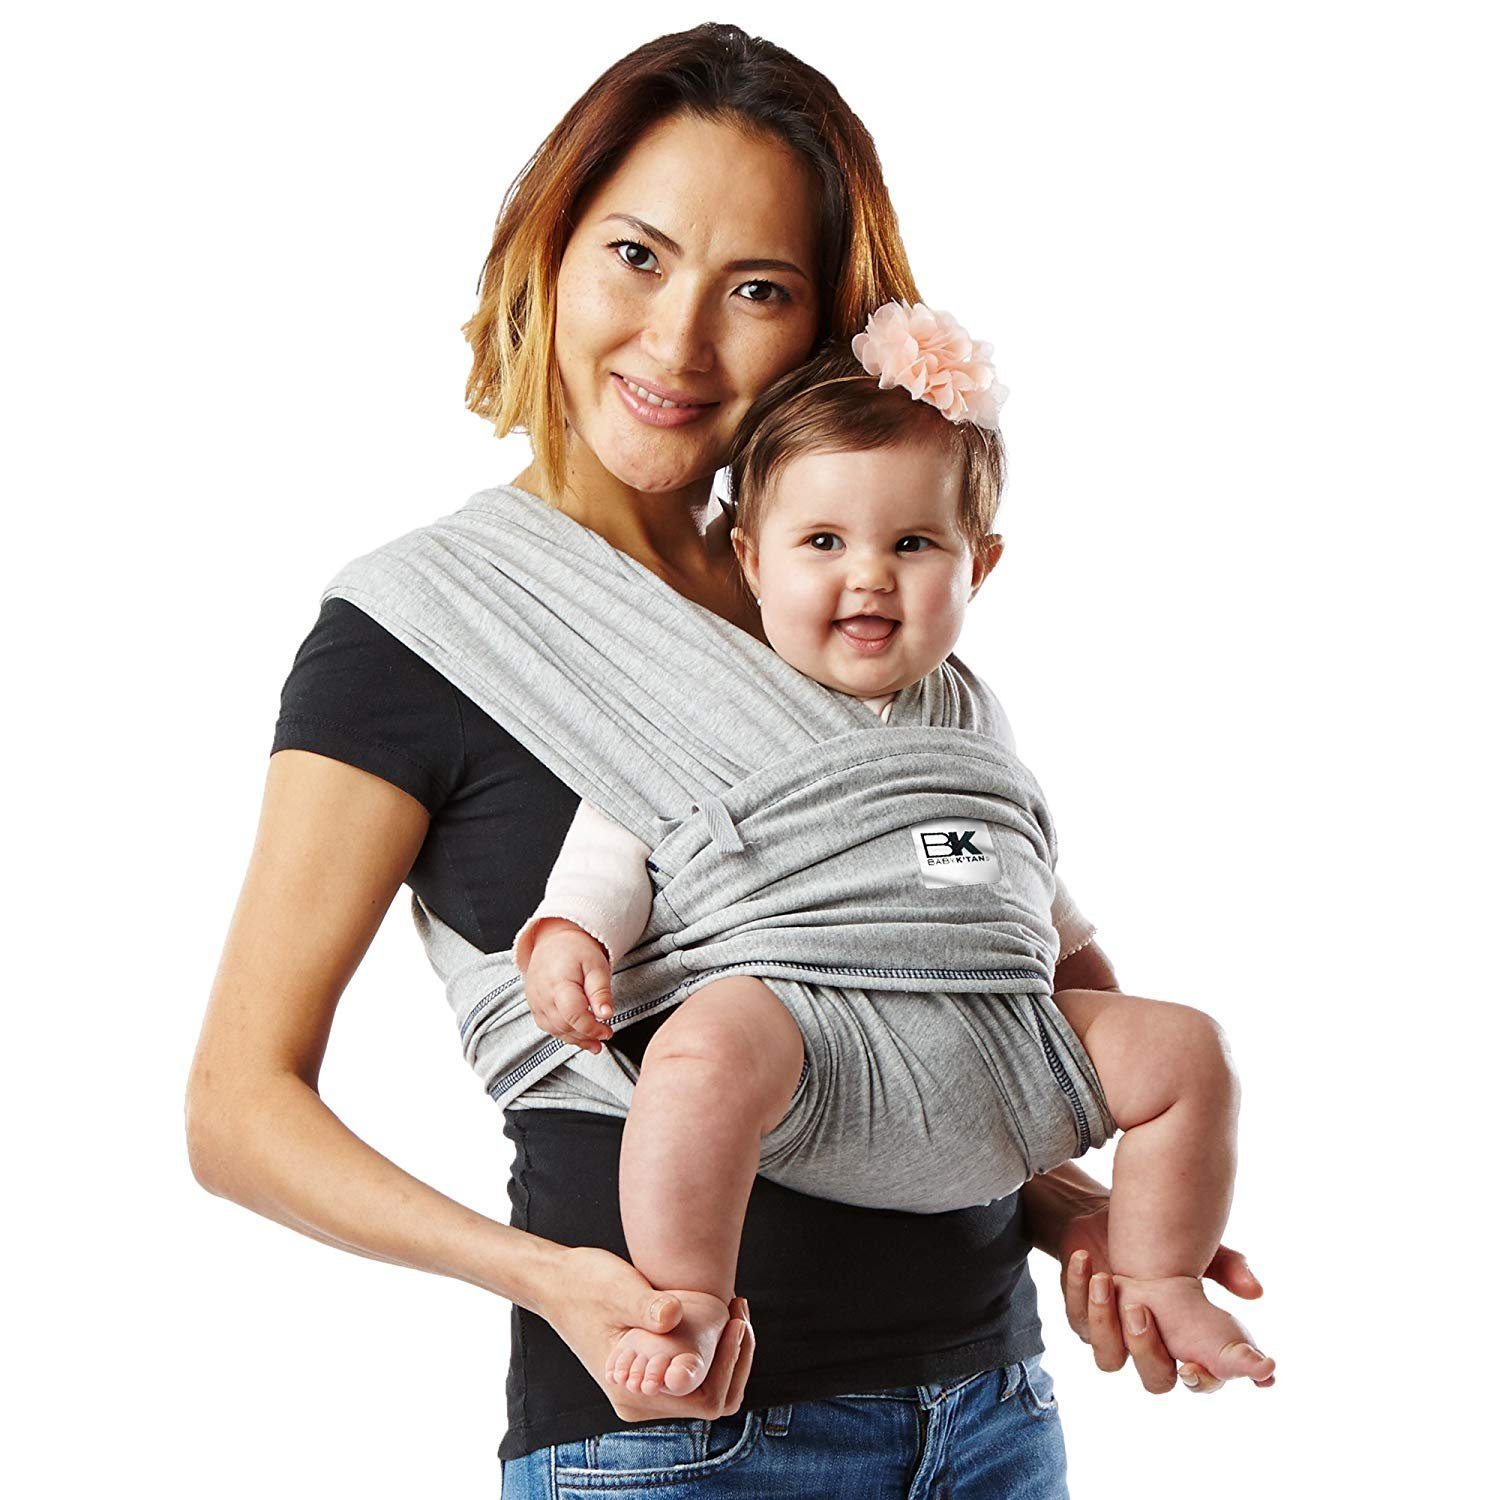 88d52bba841 Amazon.com   Baby K tan Original Baby Carrier